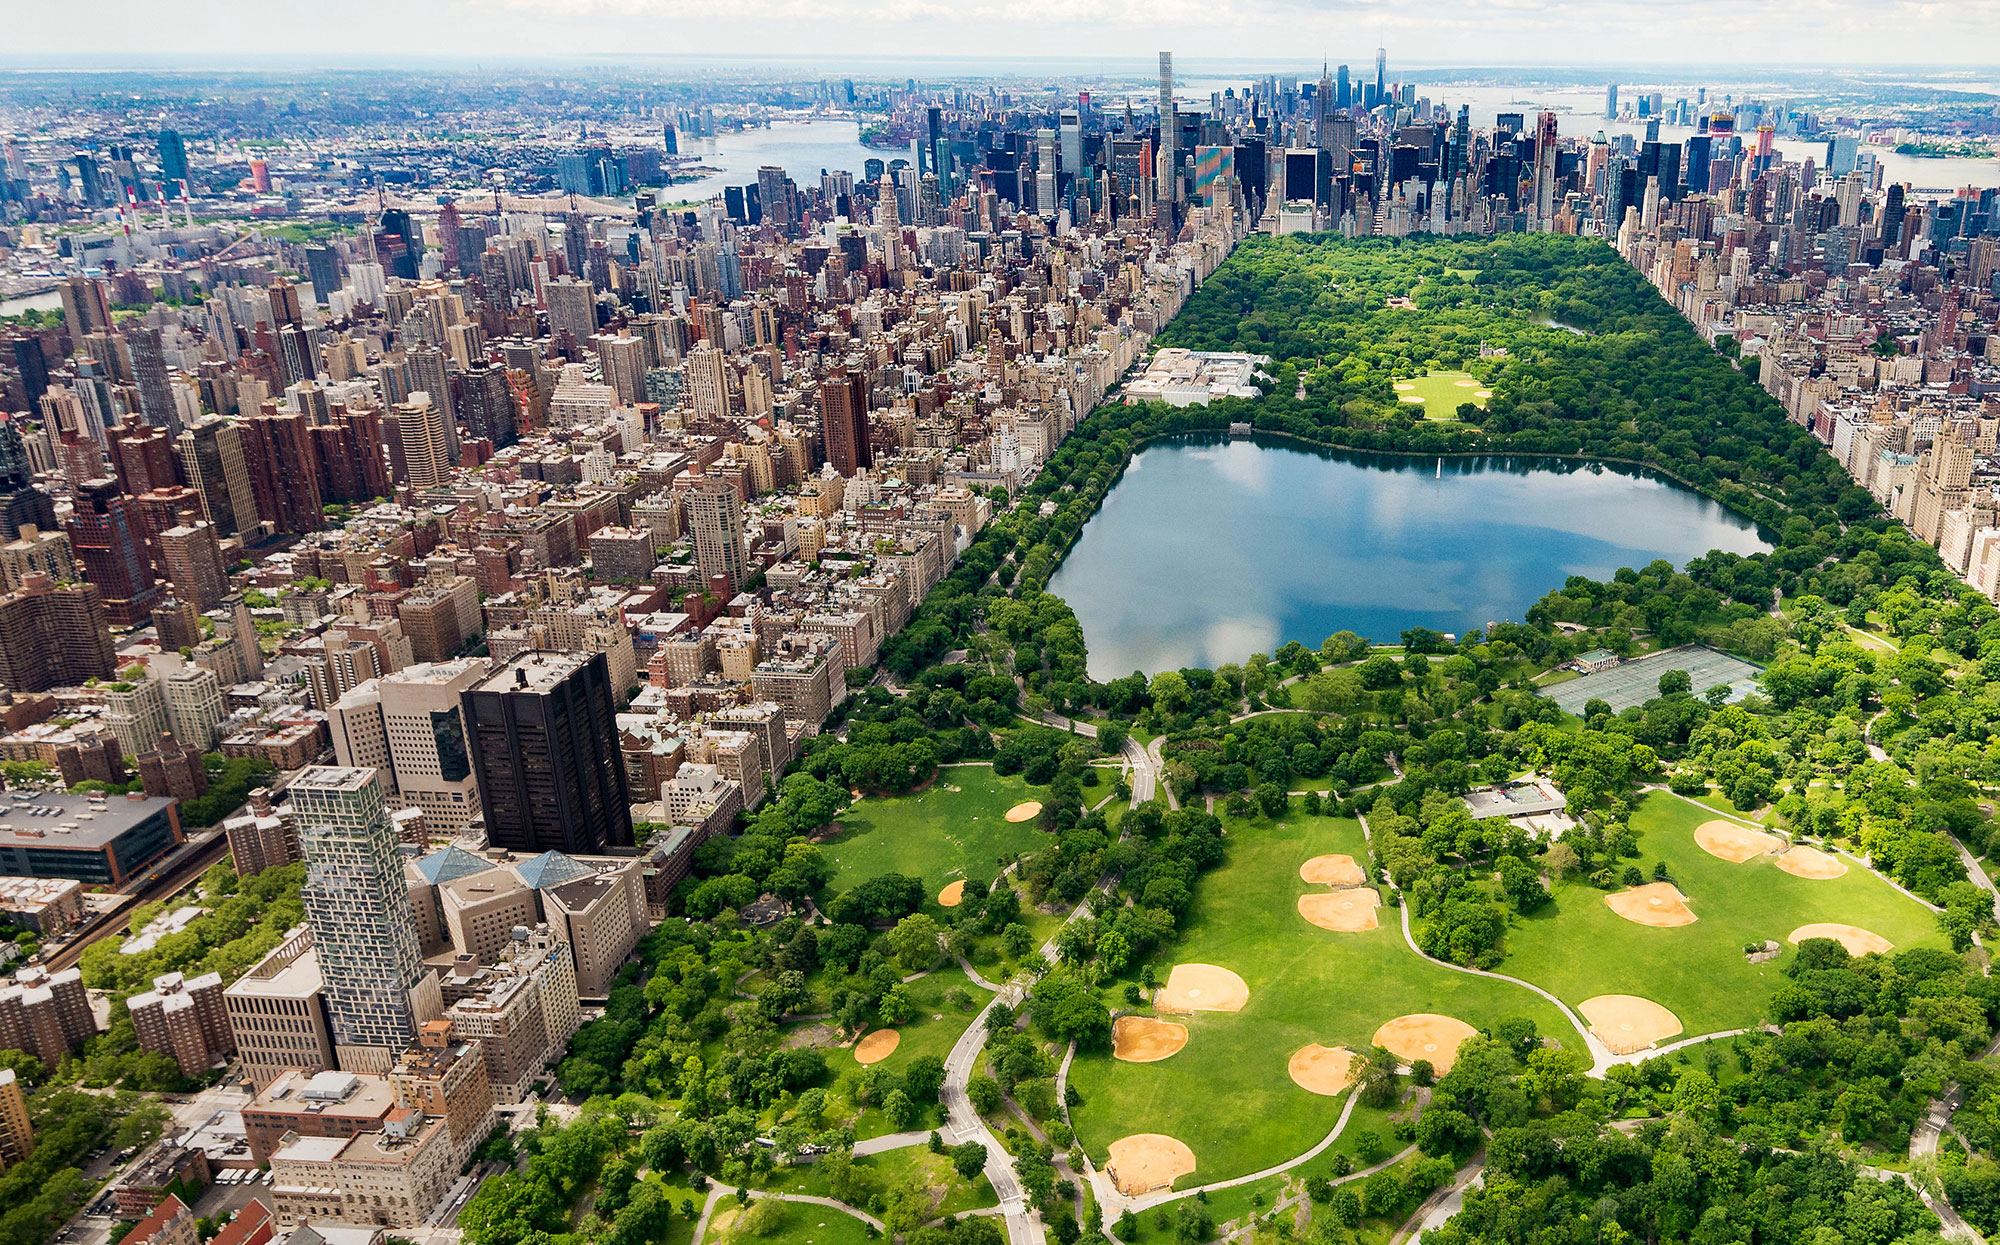 Central Park, New York aerial photo